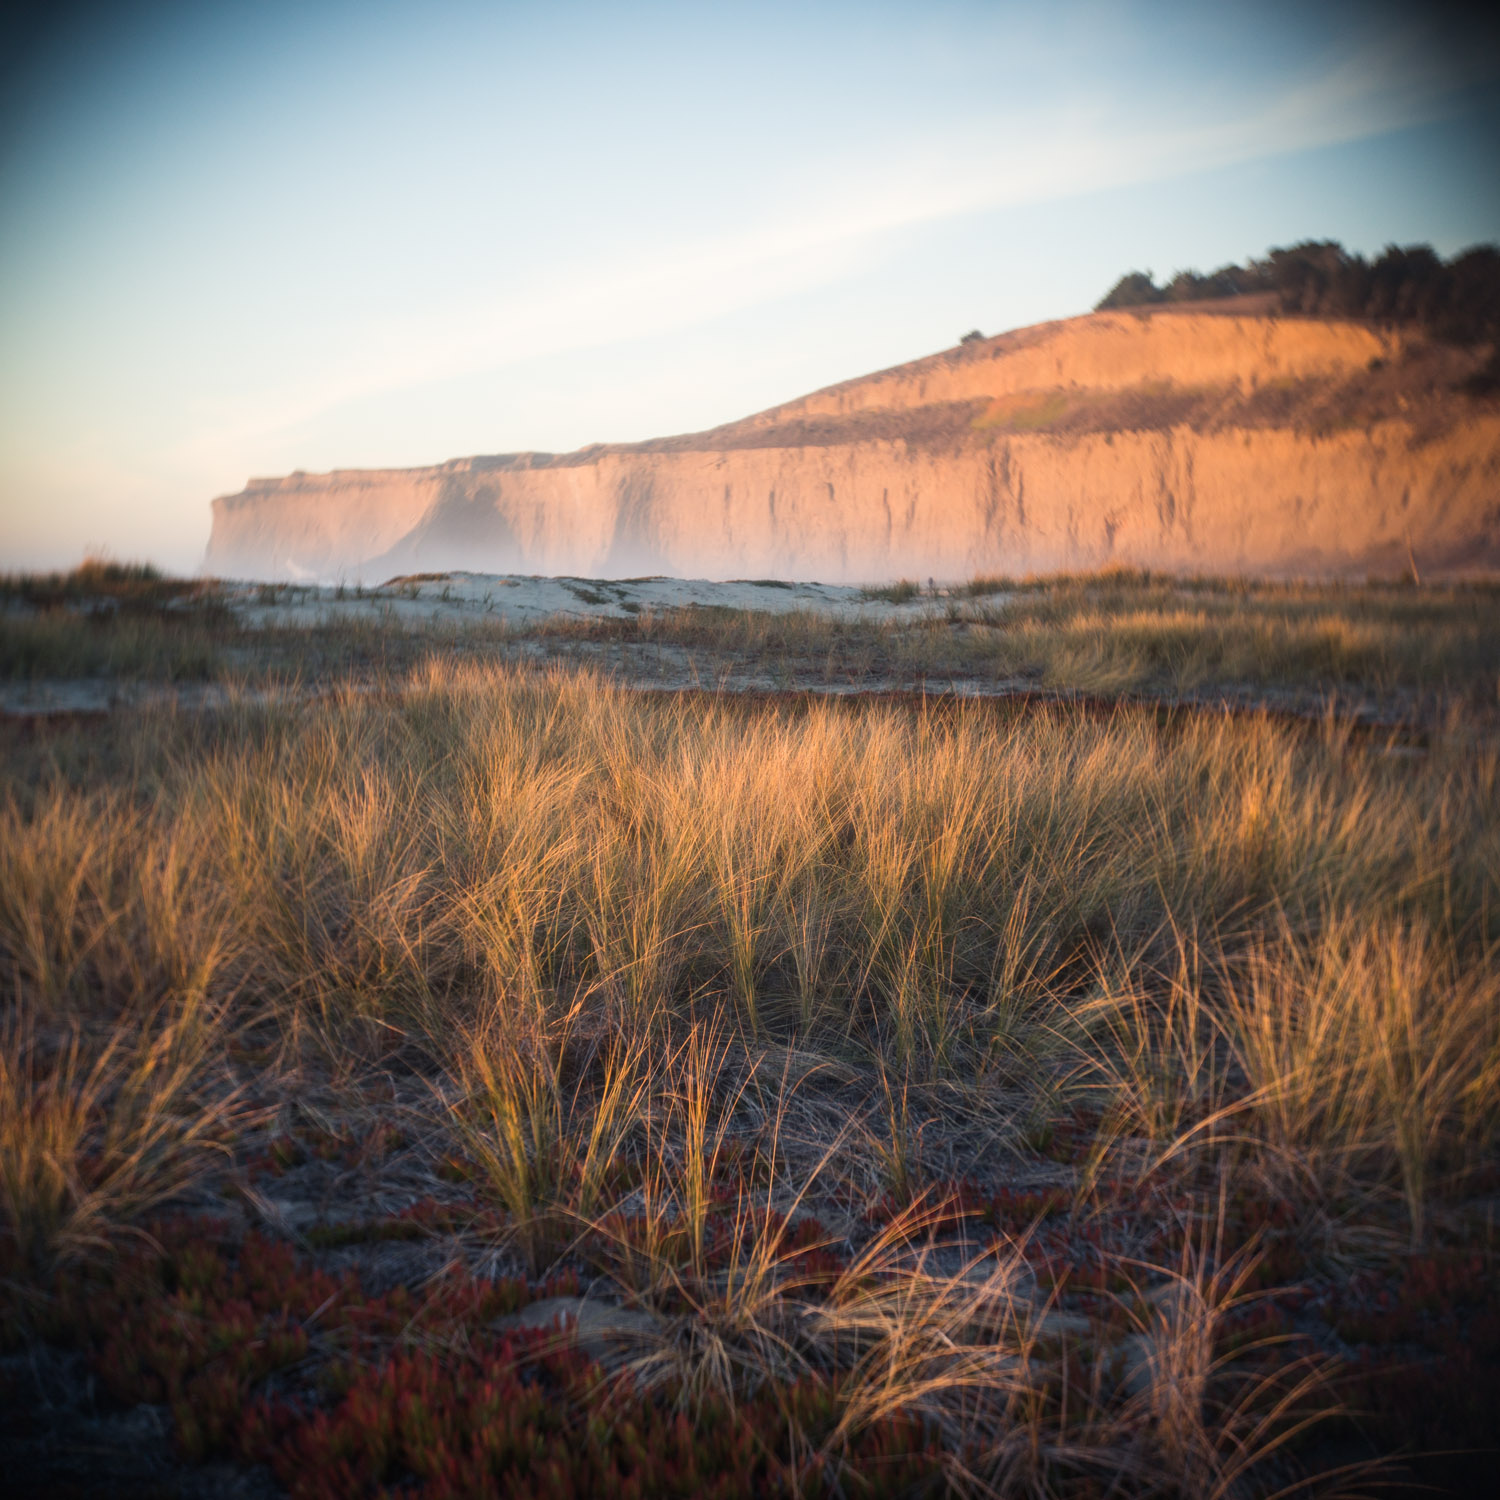 john_mireles_san mateo cliffs beach.jpg